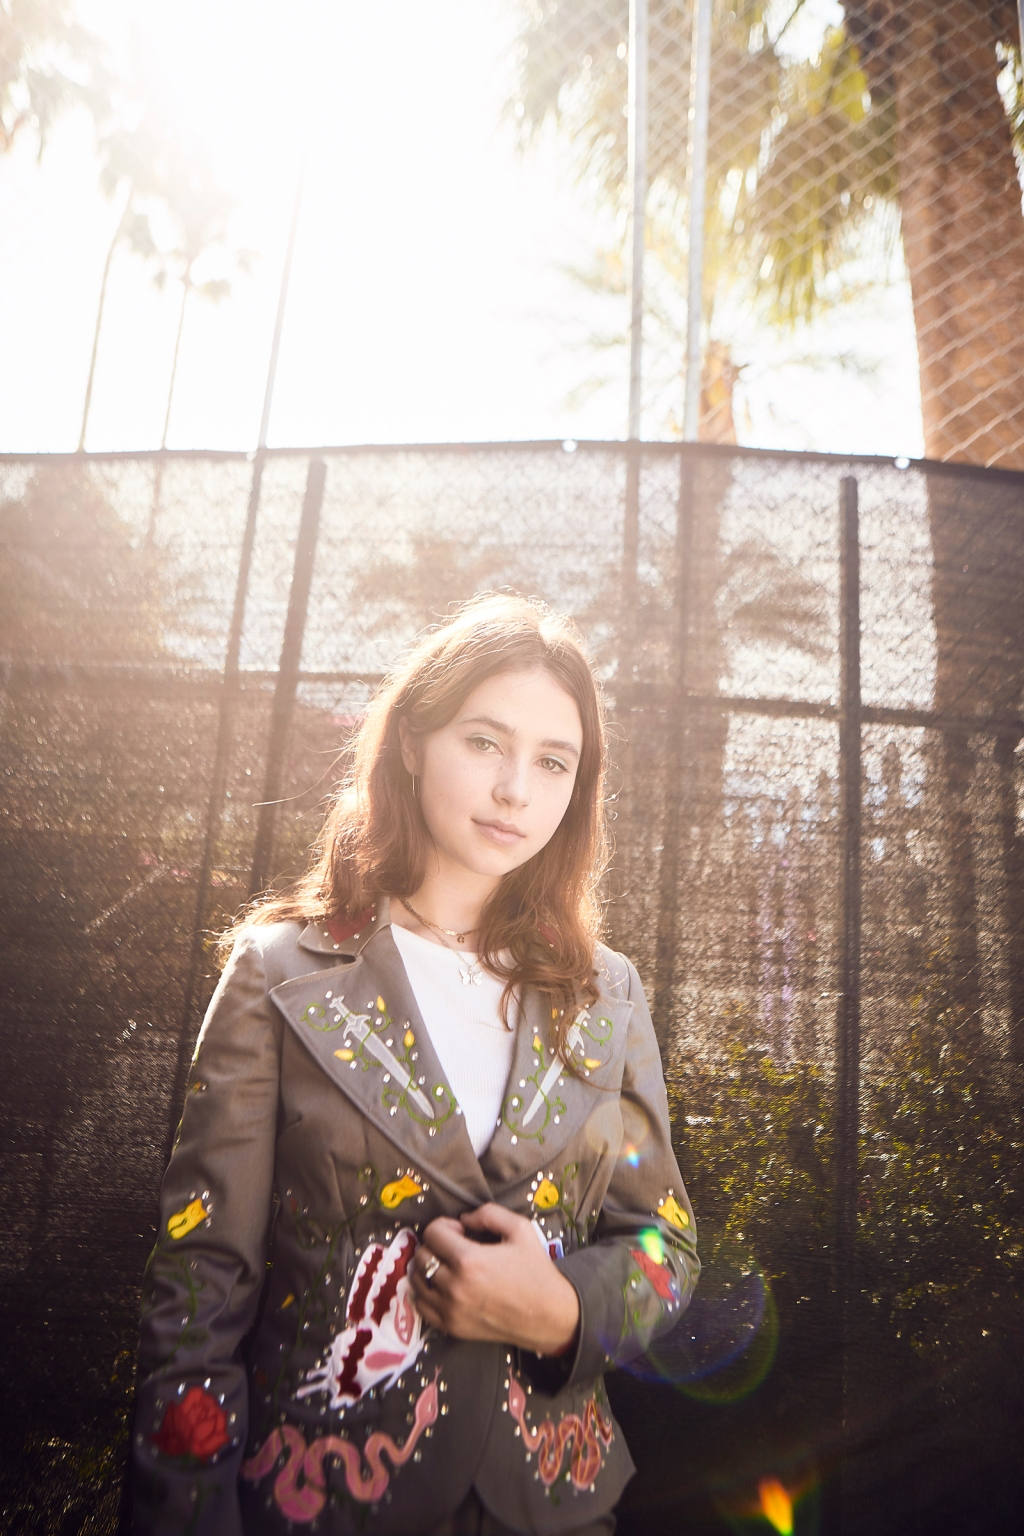 The singer-songwriter made her Coachella debut this weekend.